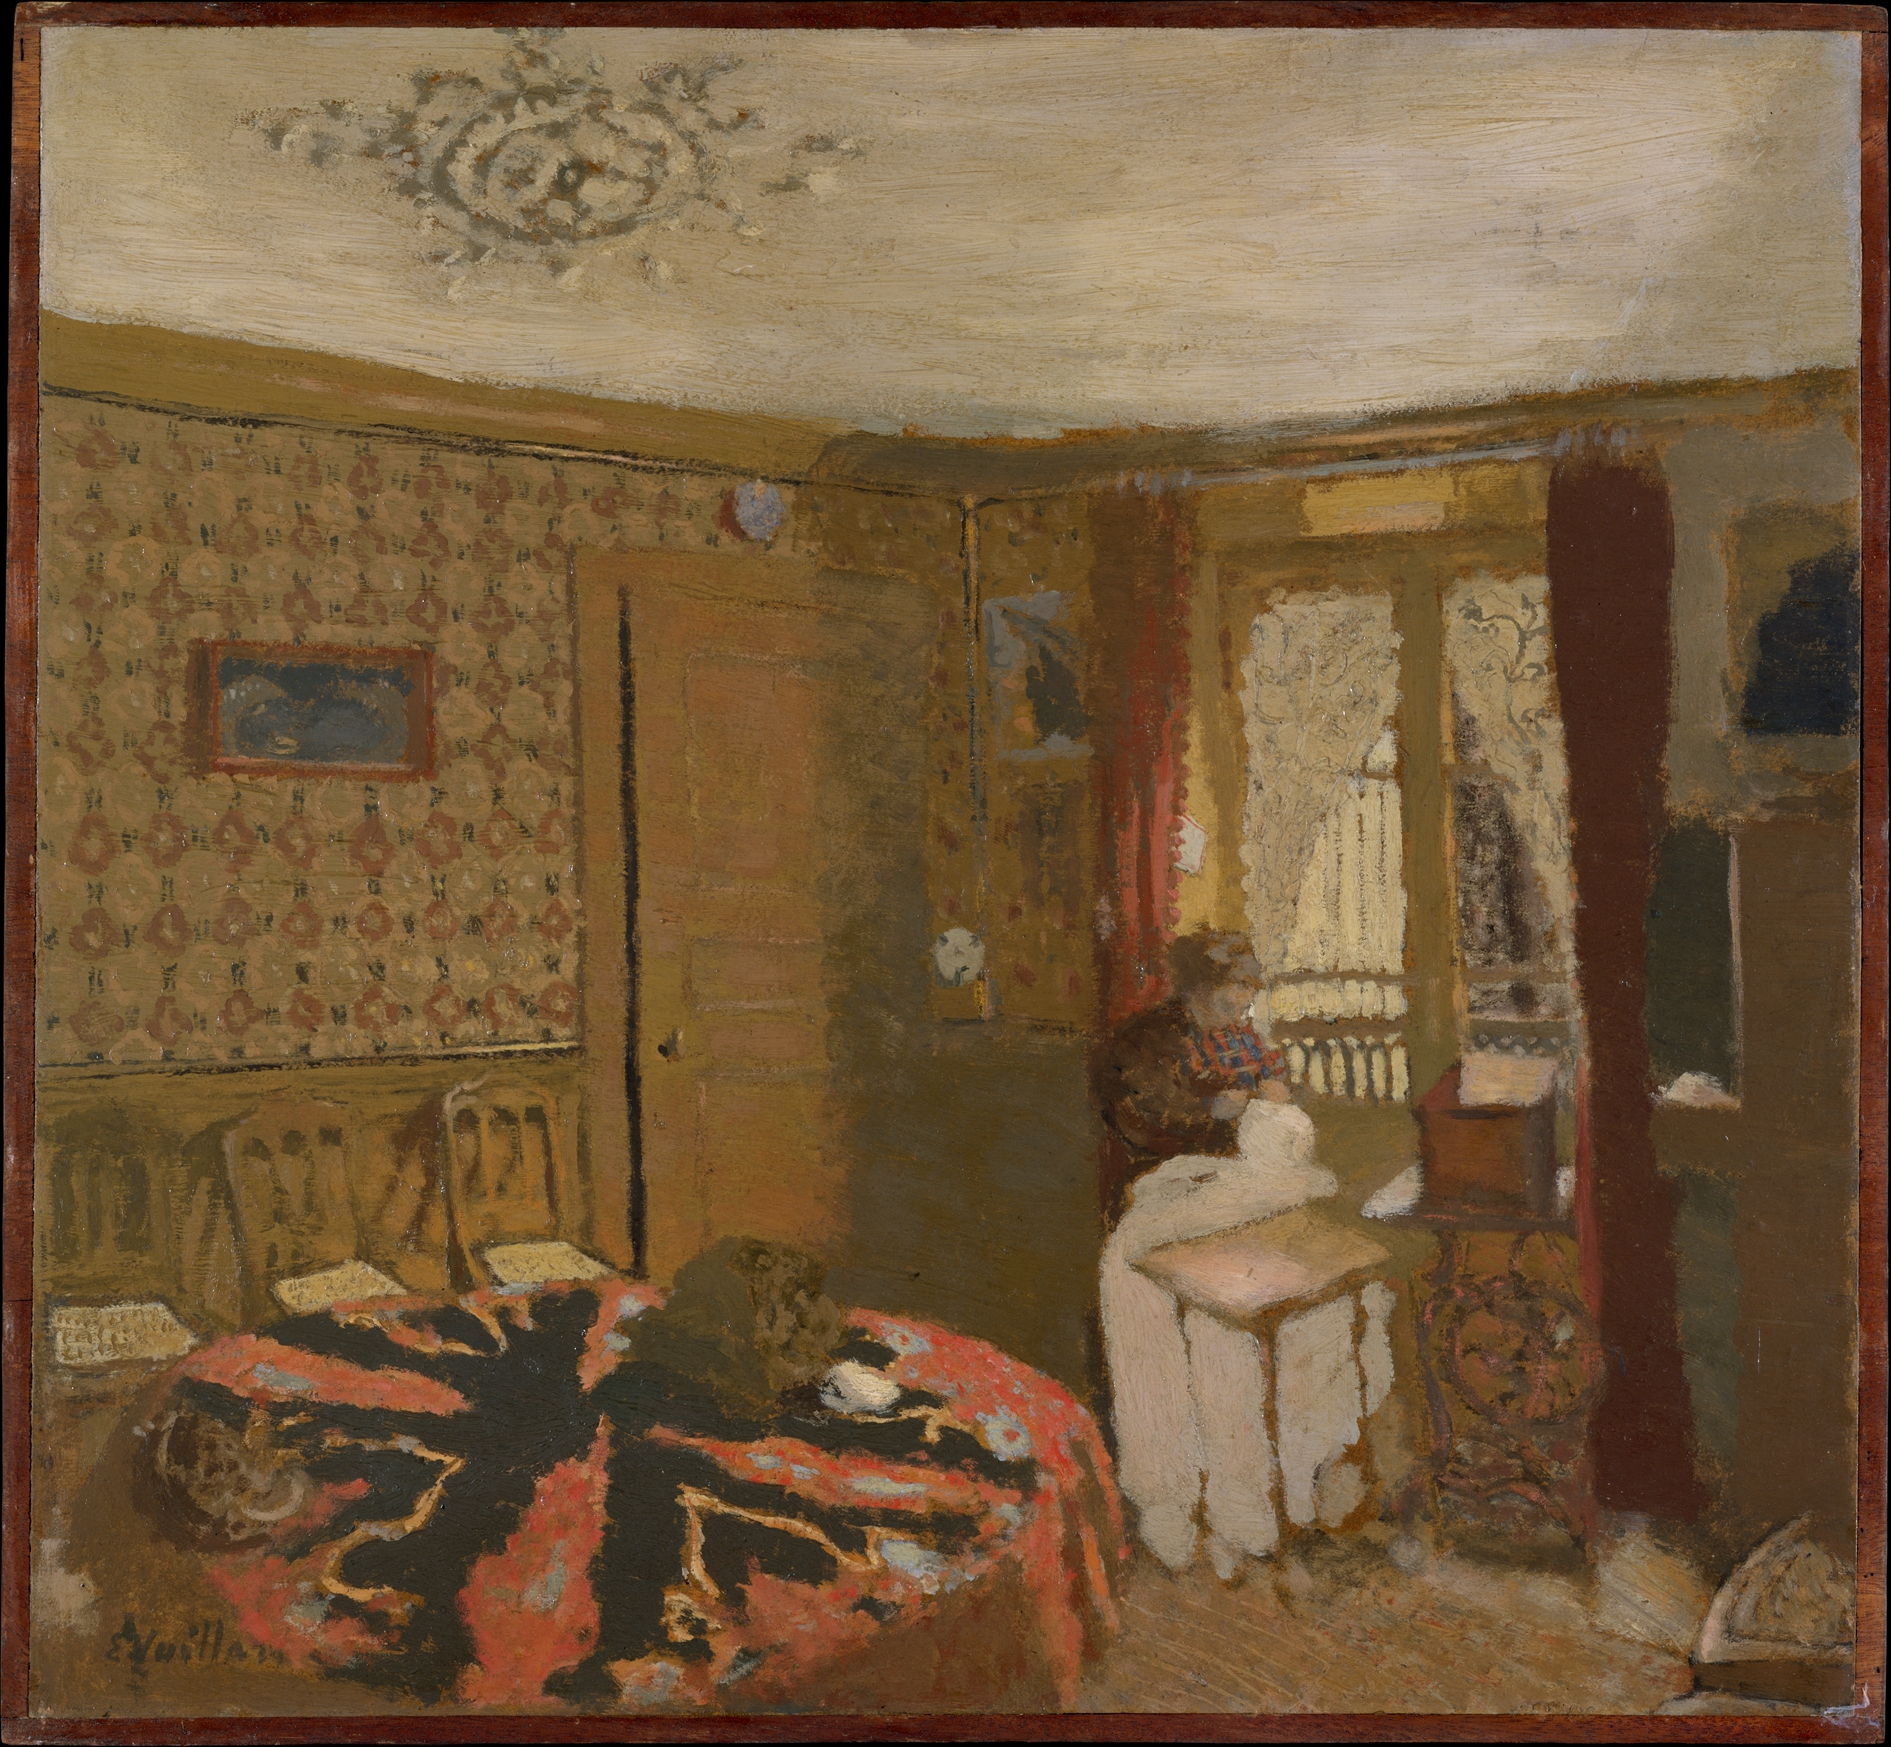 Mme Vuillard Sewing by the Window, rue Truffaut